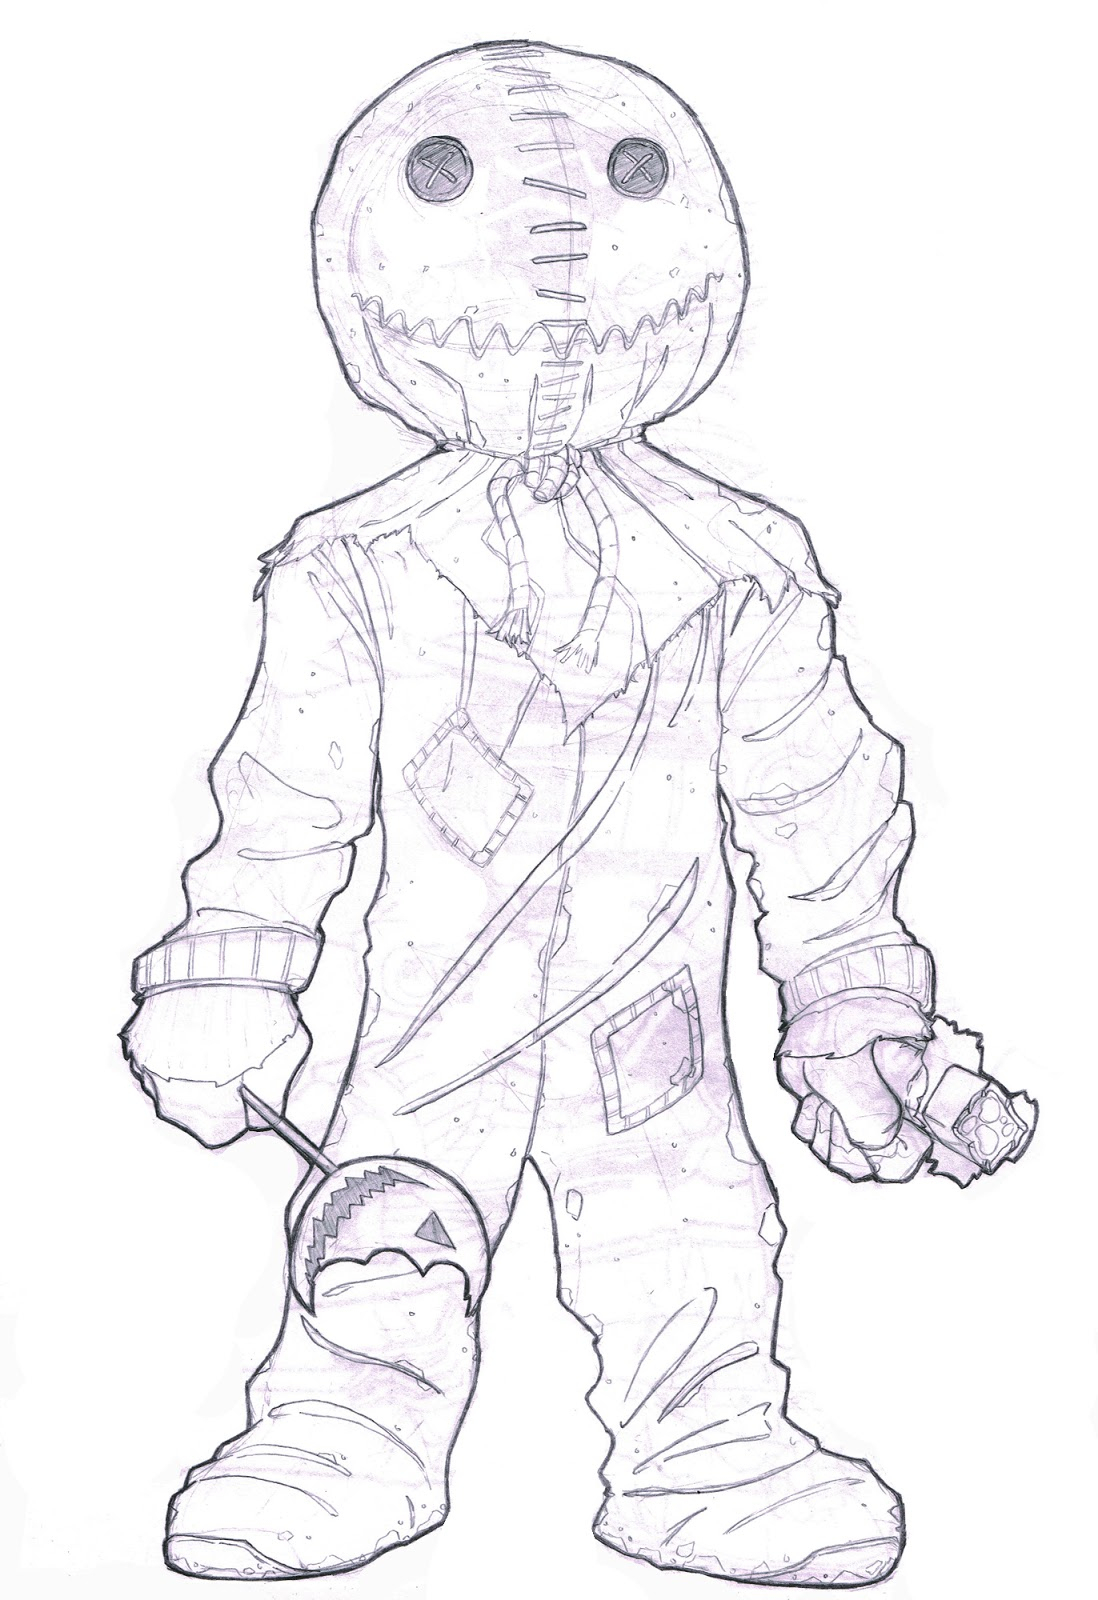 Sketch Paddys: Trick 'R Treat Sam pour Trick Or Treat Coloring Book: Trick Or